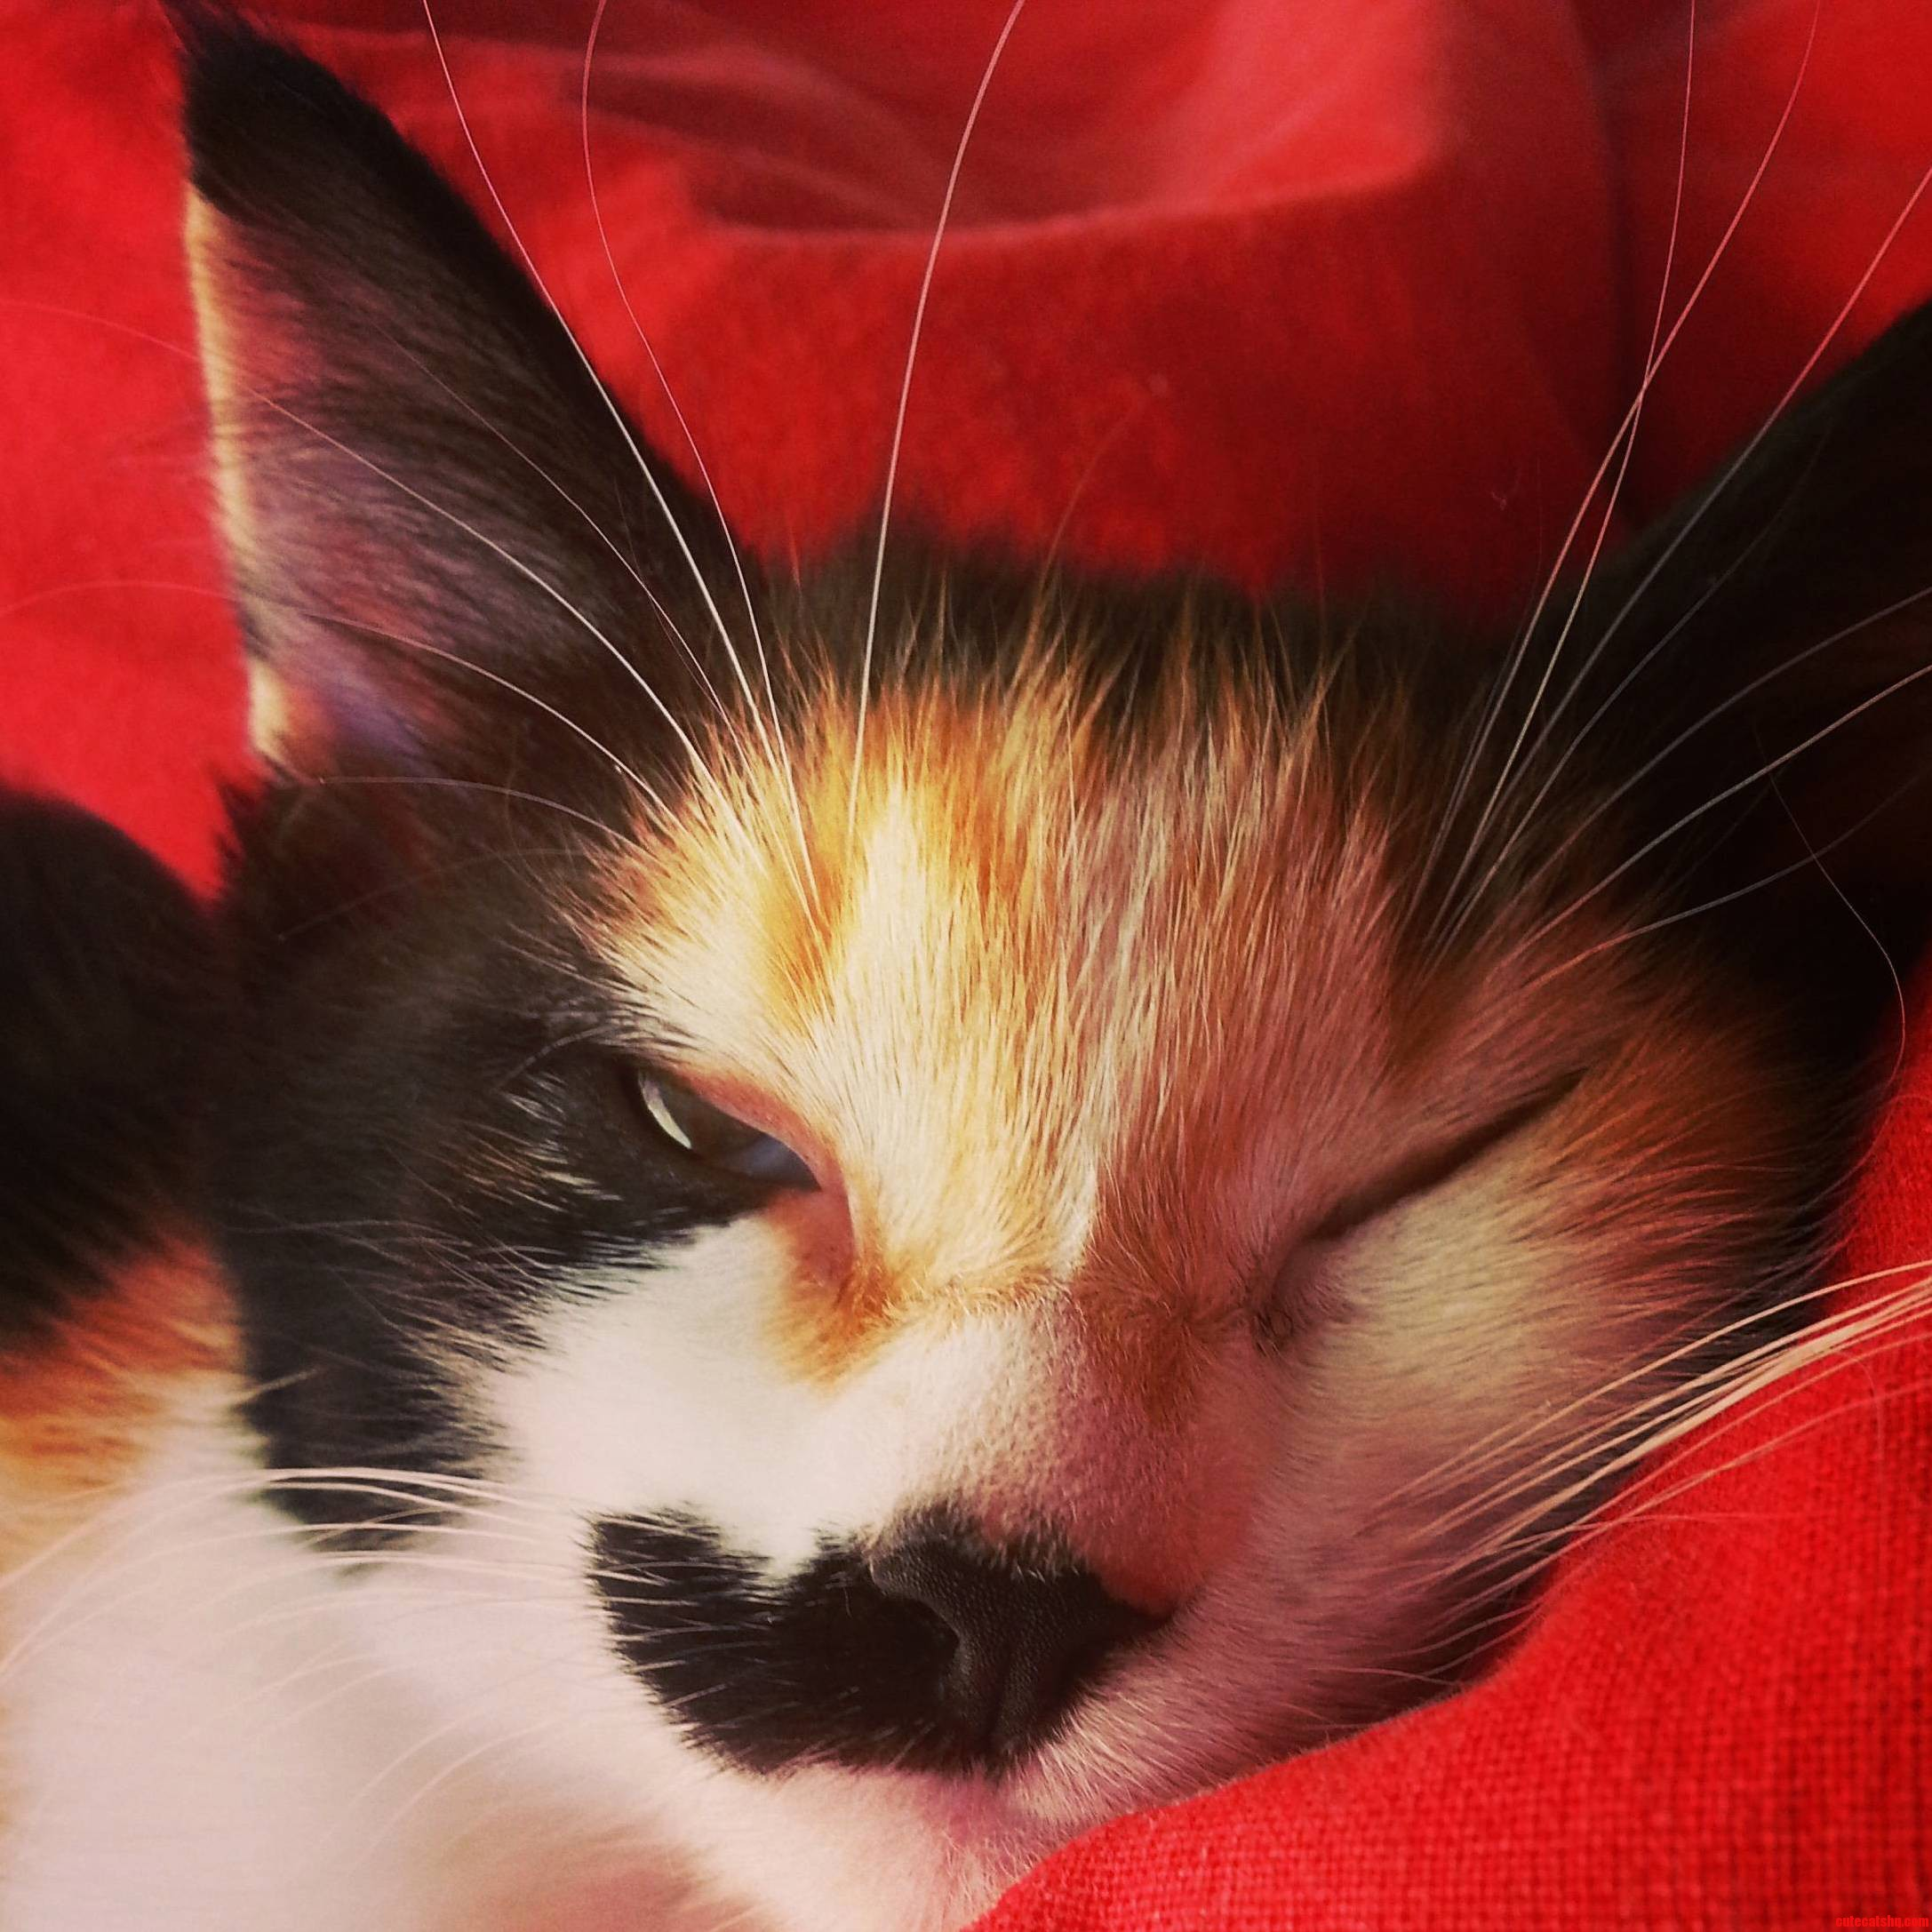 My cat recently passed away and this is my favourite picture of hers from when she was just a kitten